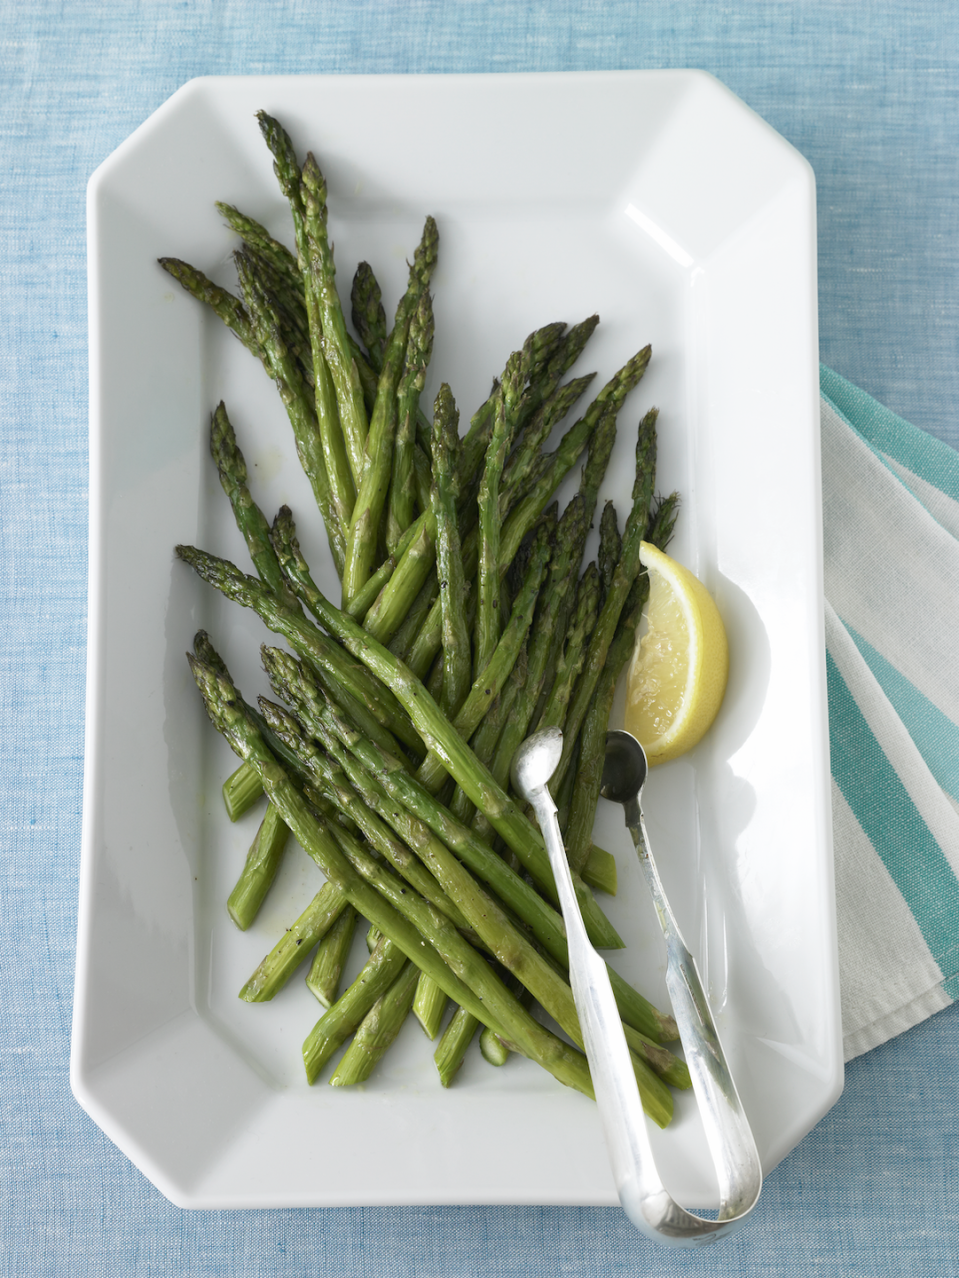 """<p>Don't stress about the sides! Just roast asparagus with olive oil and lemon and call it a day.</p><p><em><a href=""""https://www.womansday.com/food-recipes/food-drinks/recipes/a11261/roasted-asparagus-recipe-122903/"""" rel=""""nofollow noopener"""" target=""""_blank"""" data-ylk=""""slk:Get the recipe from Woman's Day »"""" class=""""link rapid-noclick-resp"""">Get the recipe from Woman's Day »</a></em></p>"""